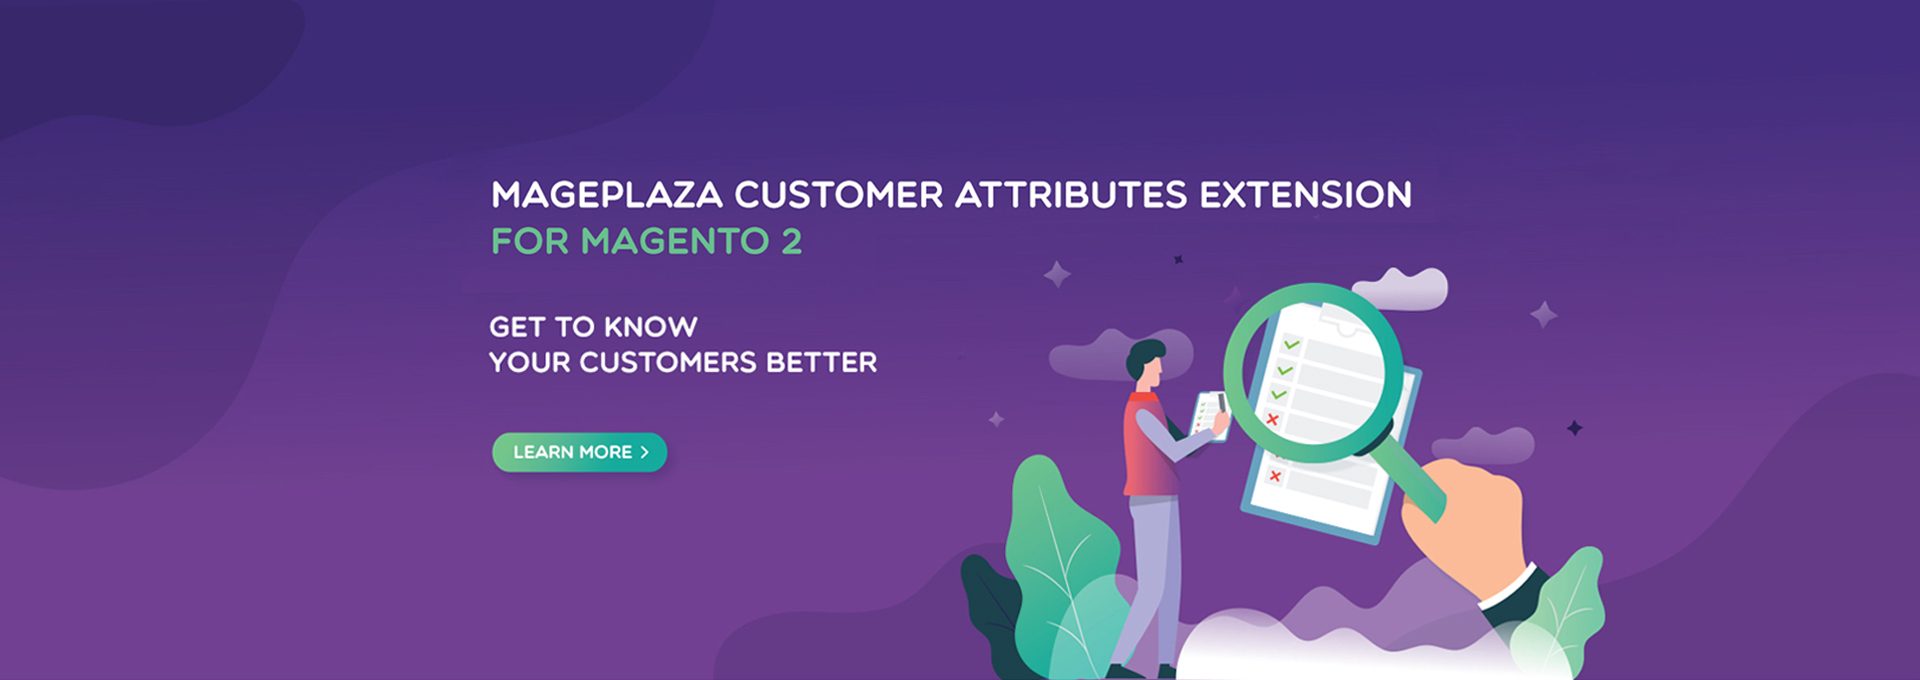 Applicable case studies of Magento 2 Customer Attributes